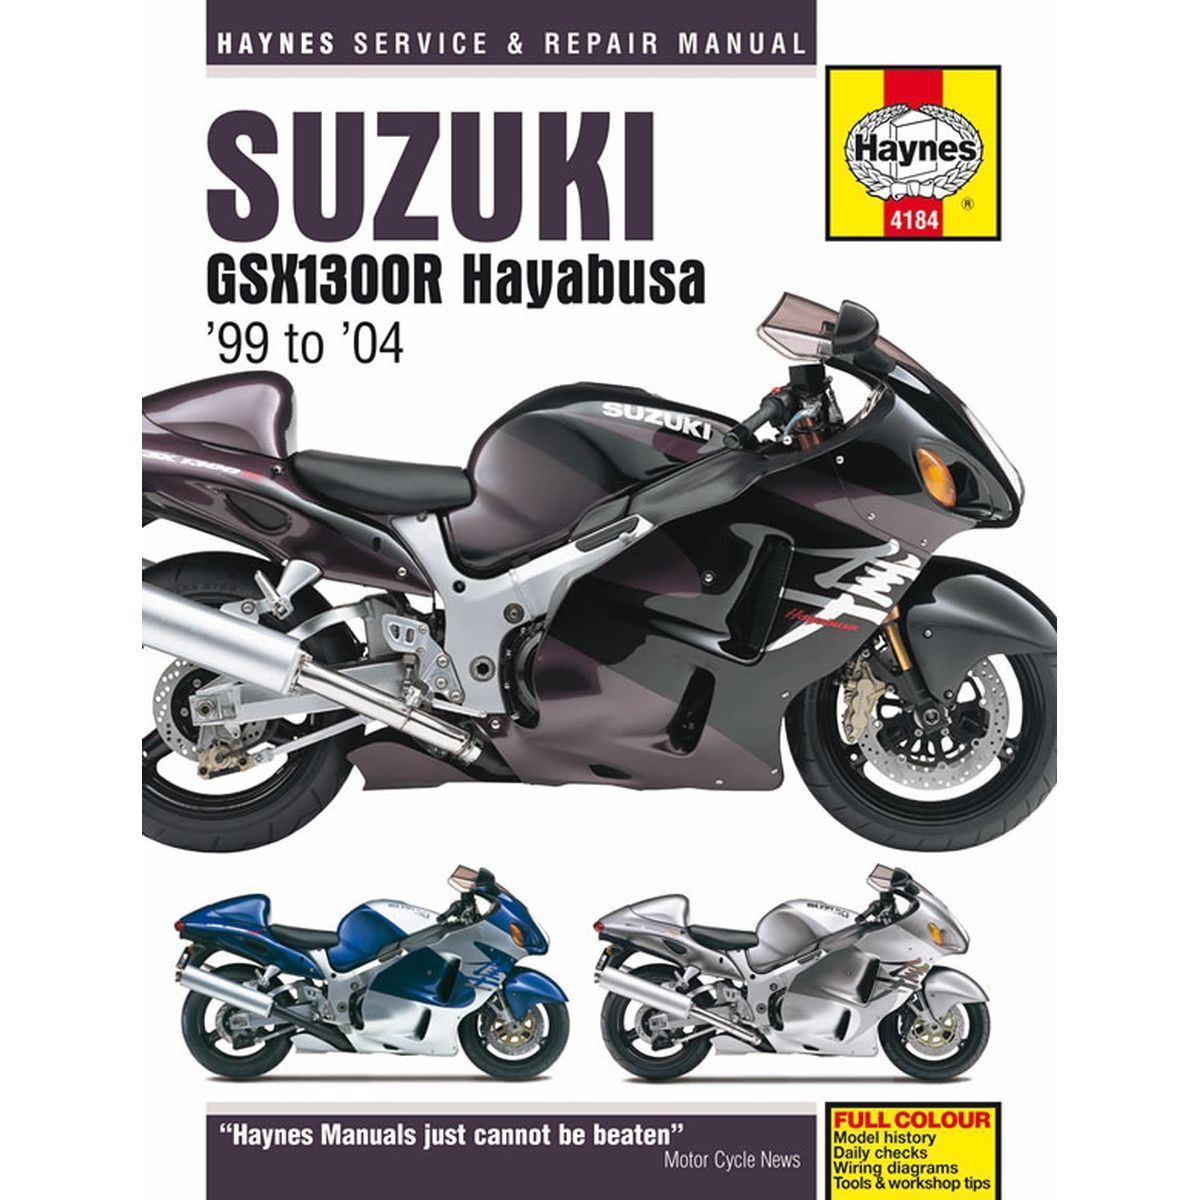 With Suzuki Sv650 Wiring Diagram On K4 Gsxr 750 Wiring Diagram